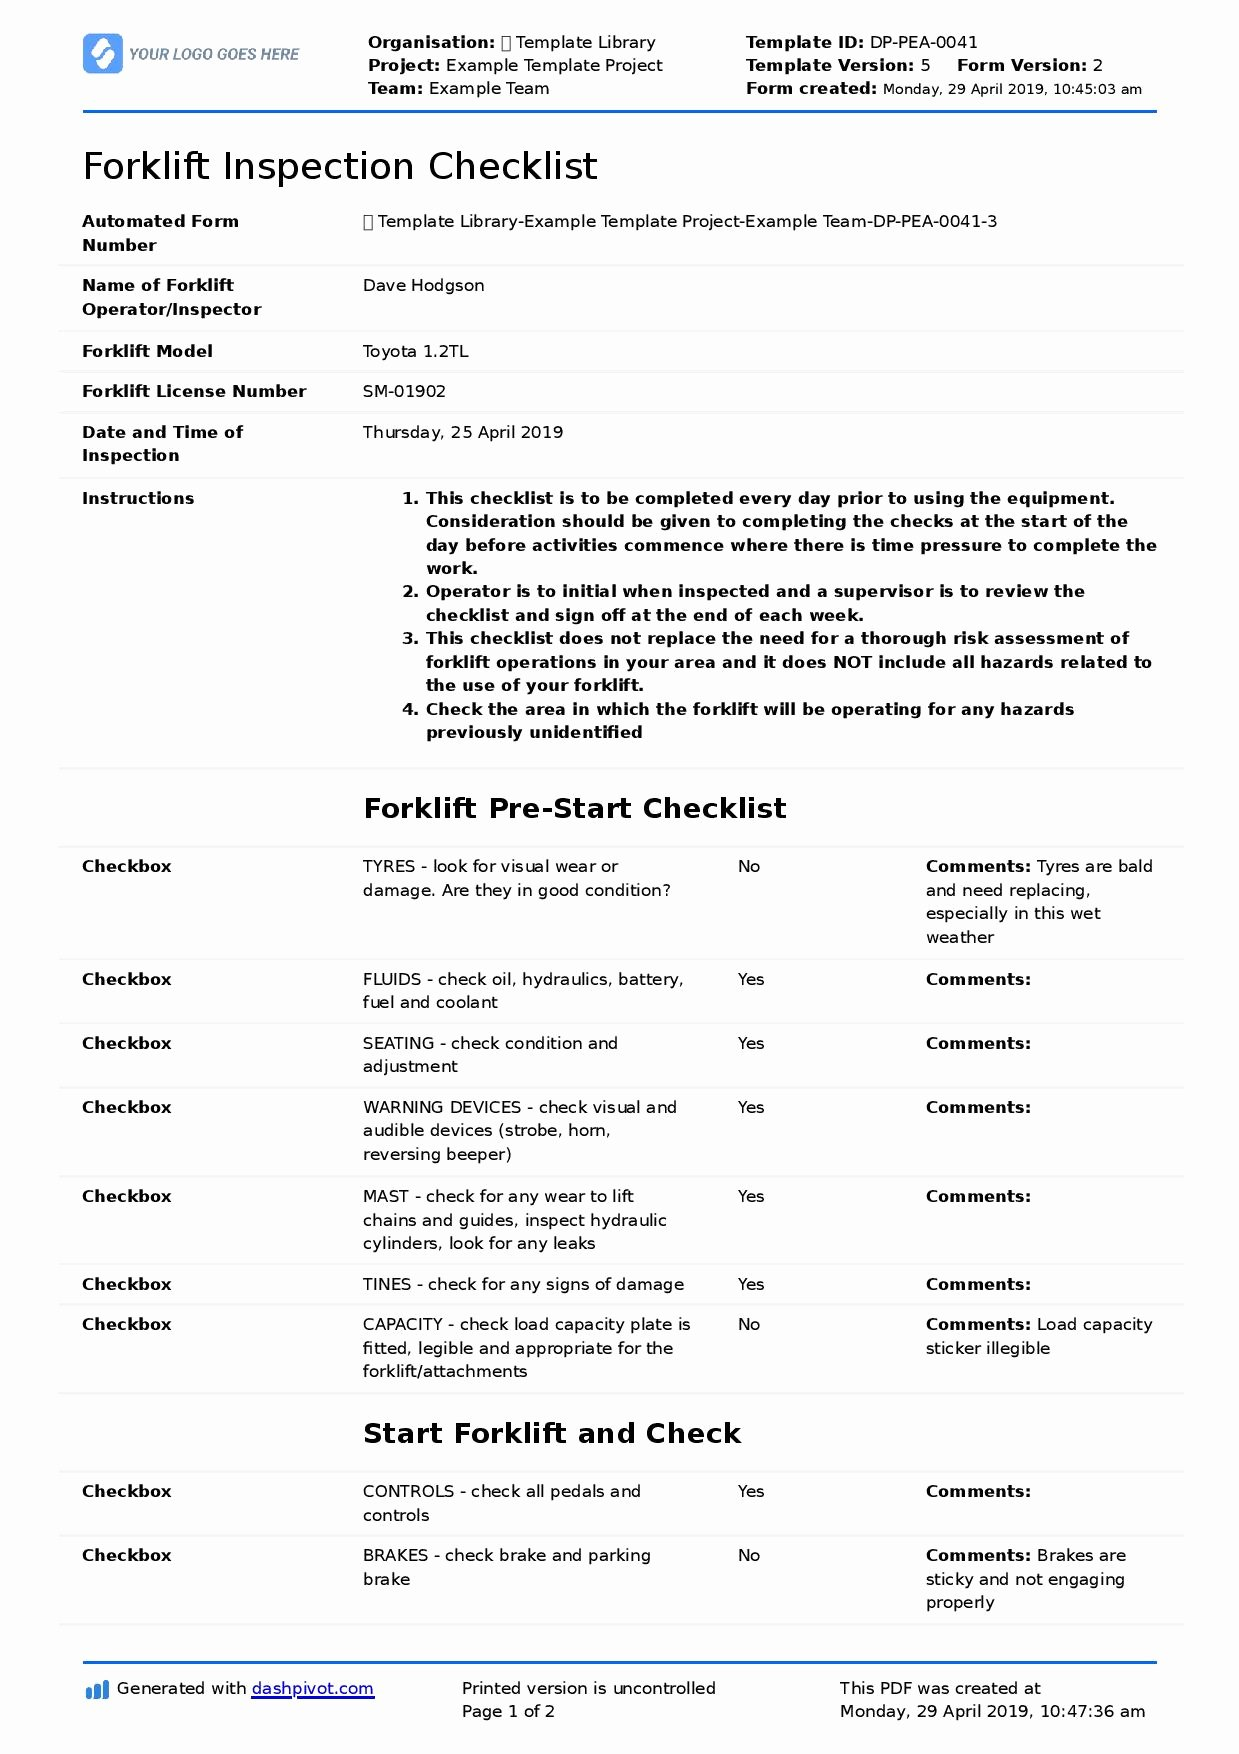 Inspection Checklist Template Excel Unique forklift Inspection Checklist for Daily Pre Use & Safety